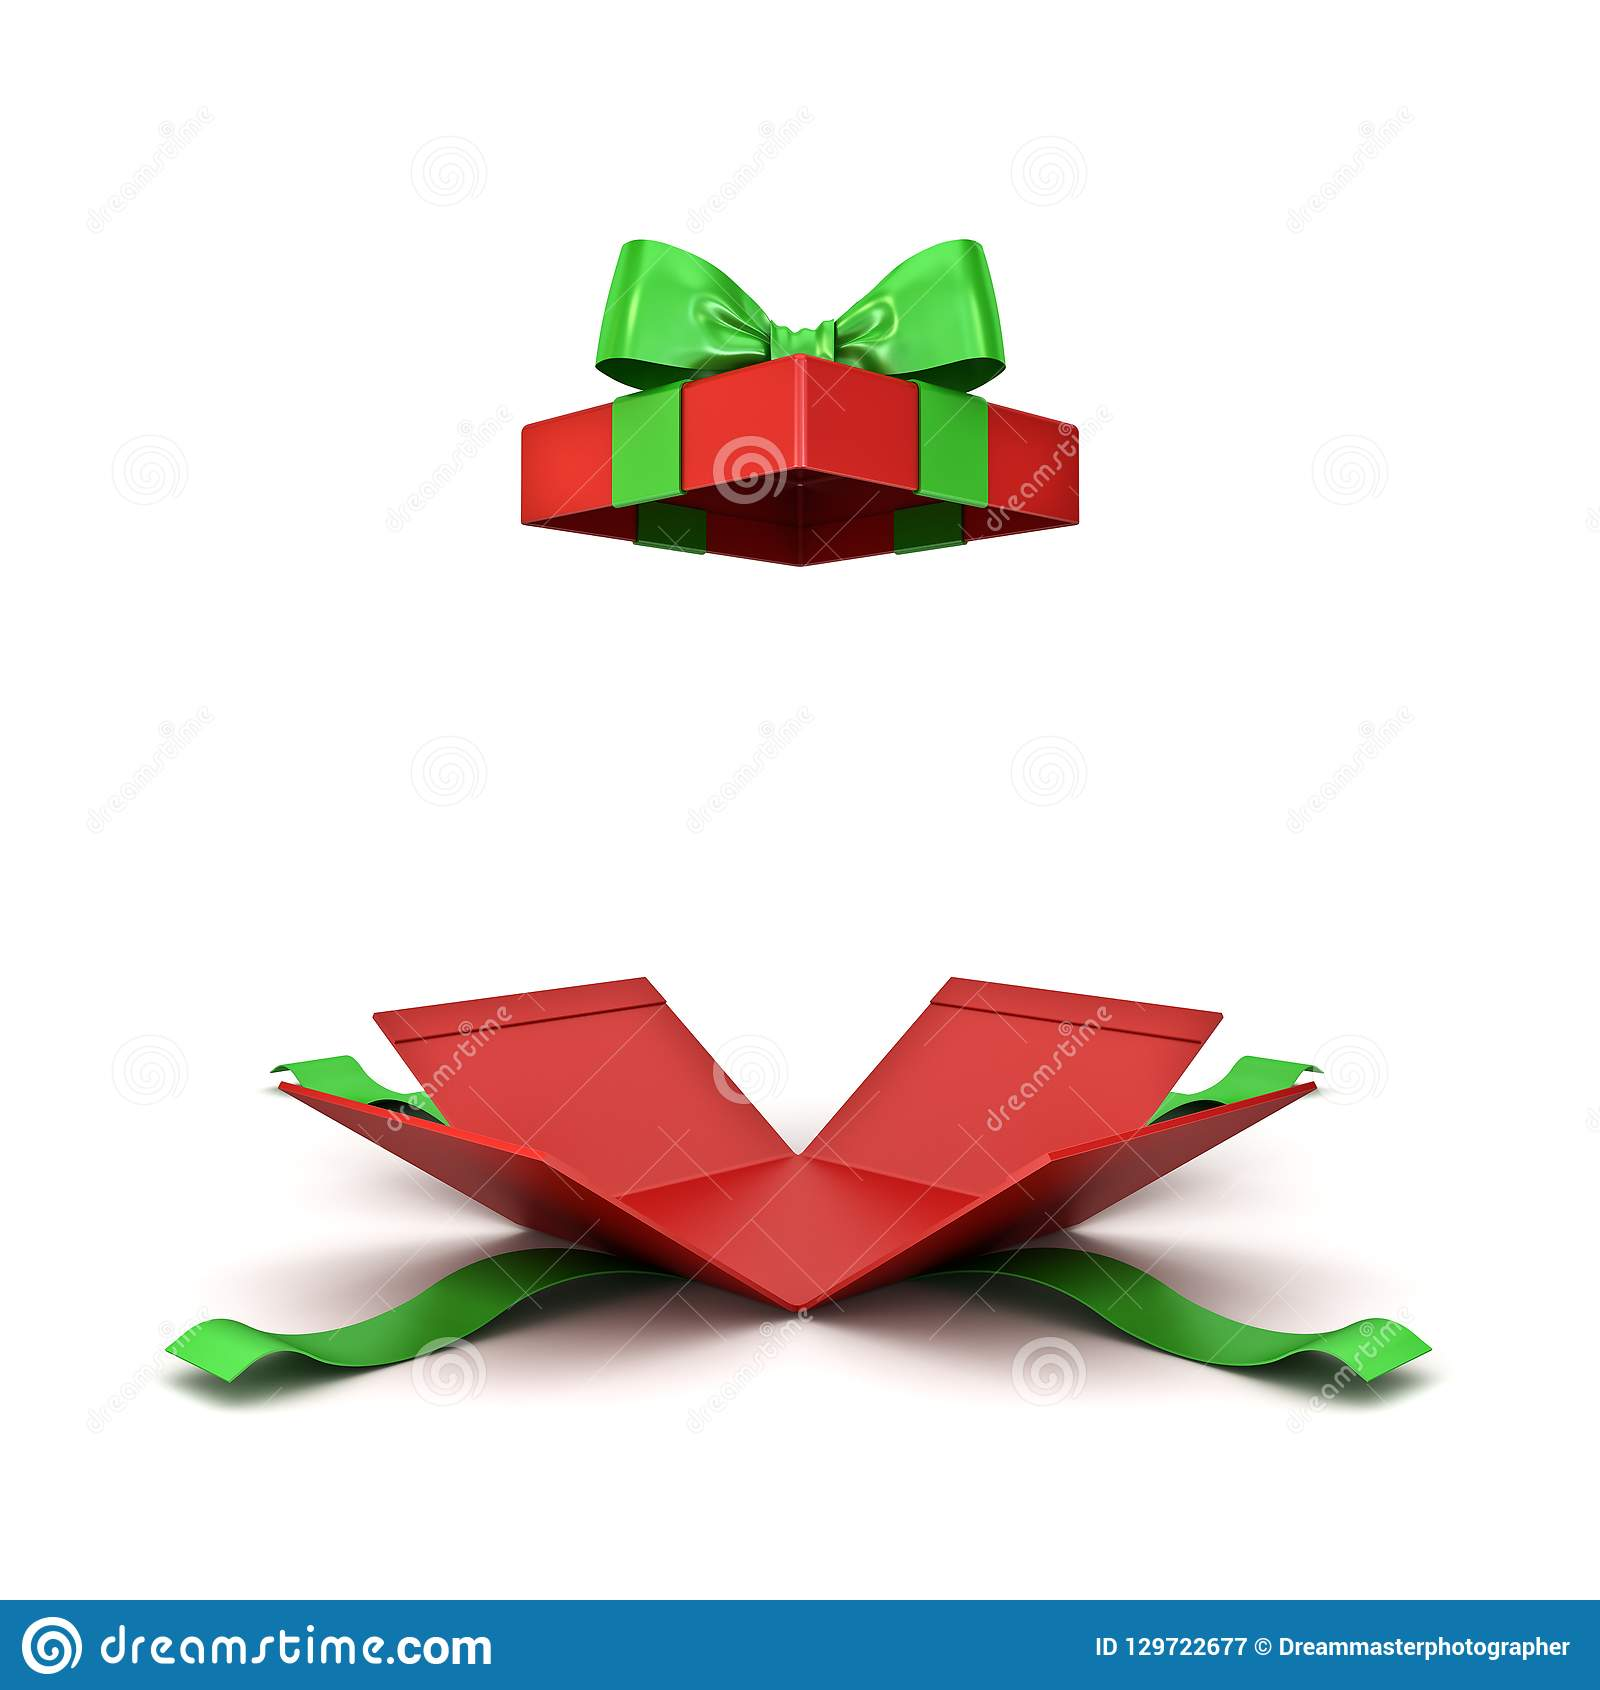 Open christmas gift box or red present box with green ribbon bow isolated on white background